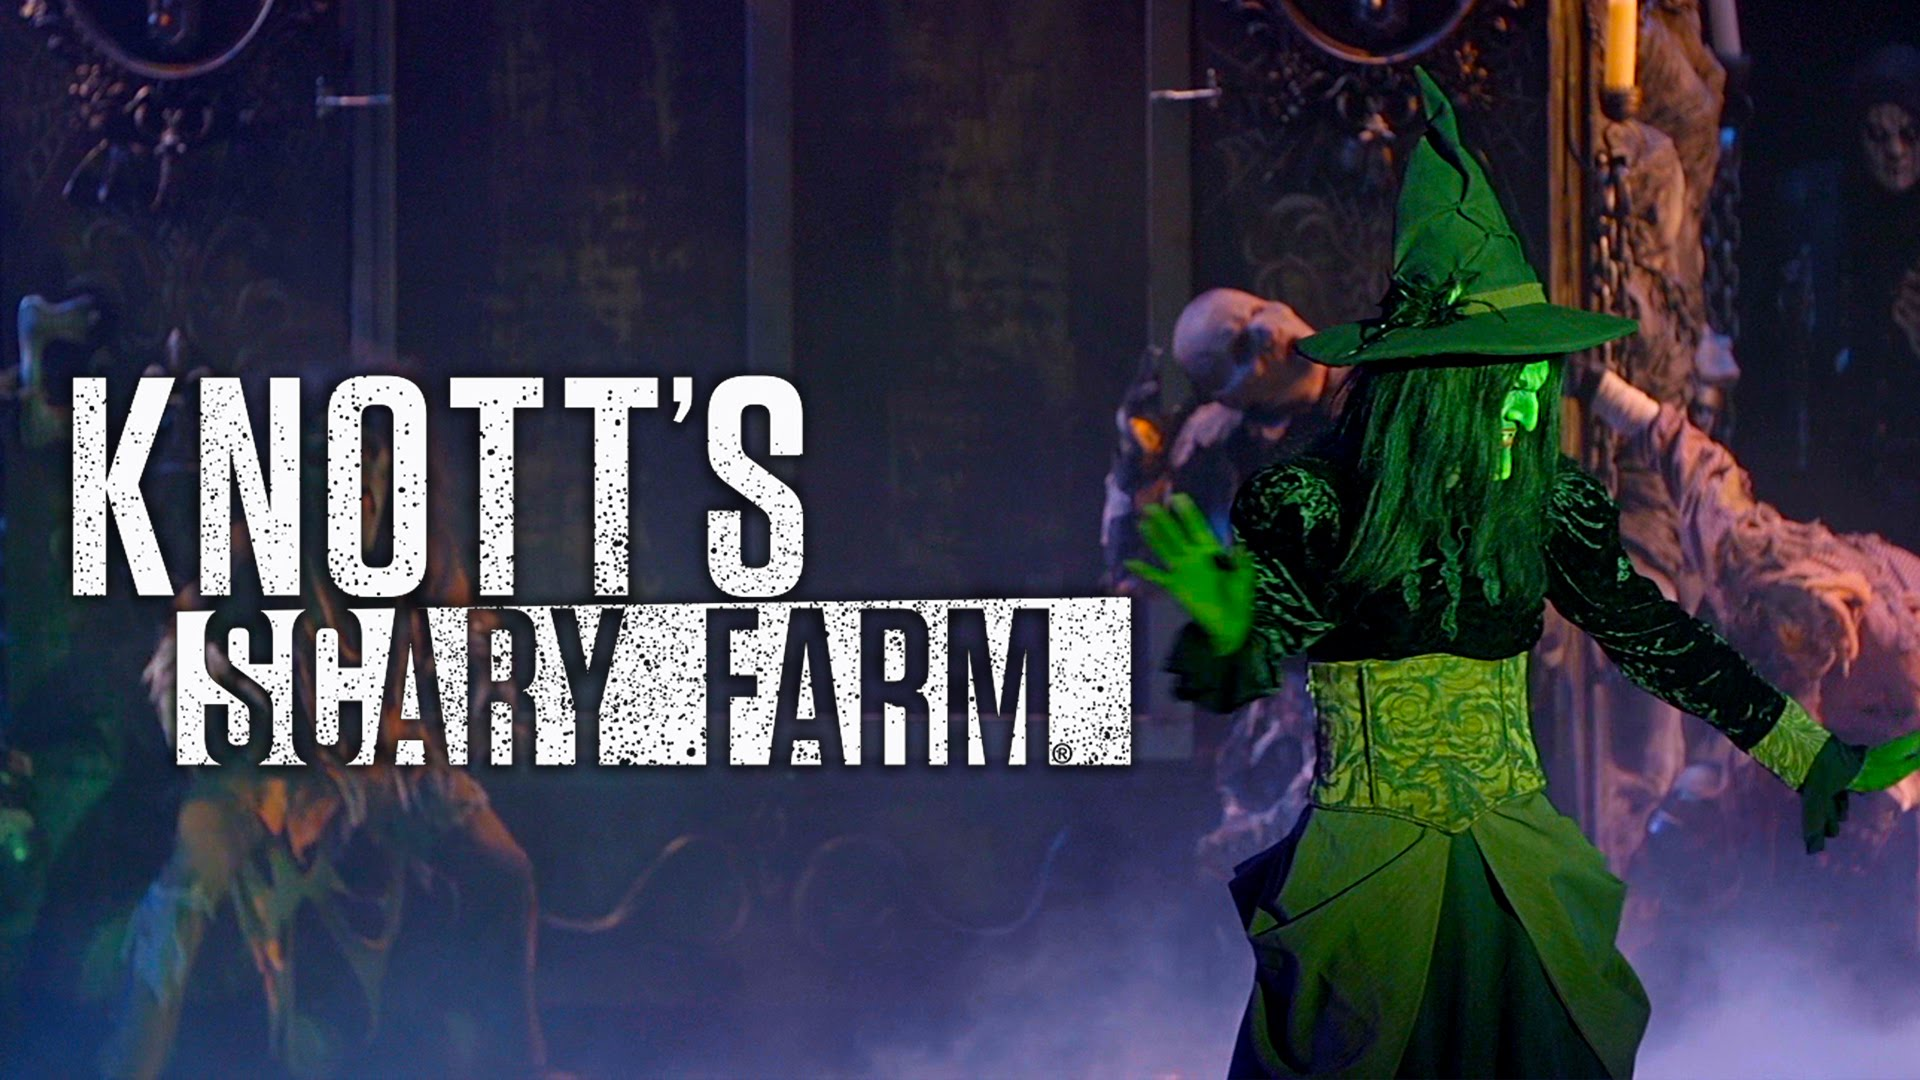 Knott's Scary Farm Closes Attraction After Complaints From Mental Health Professionals